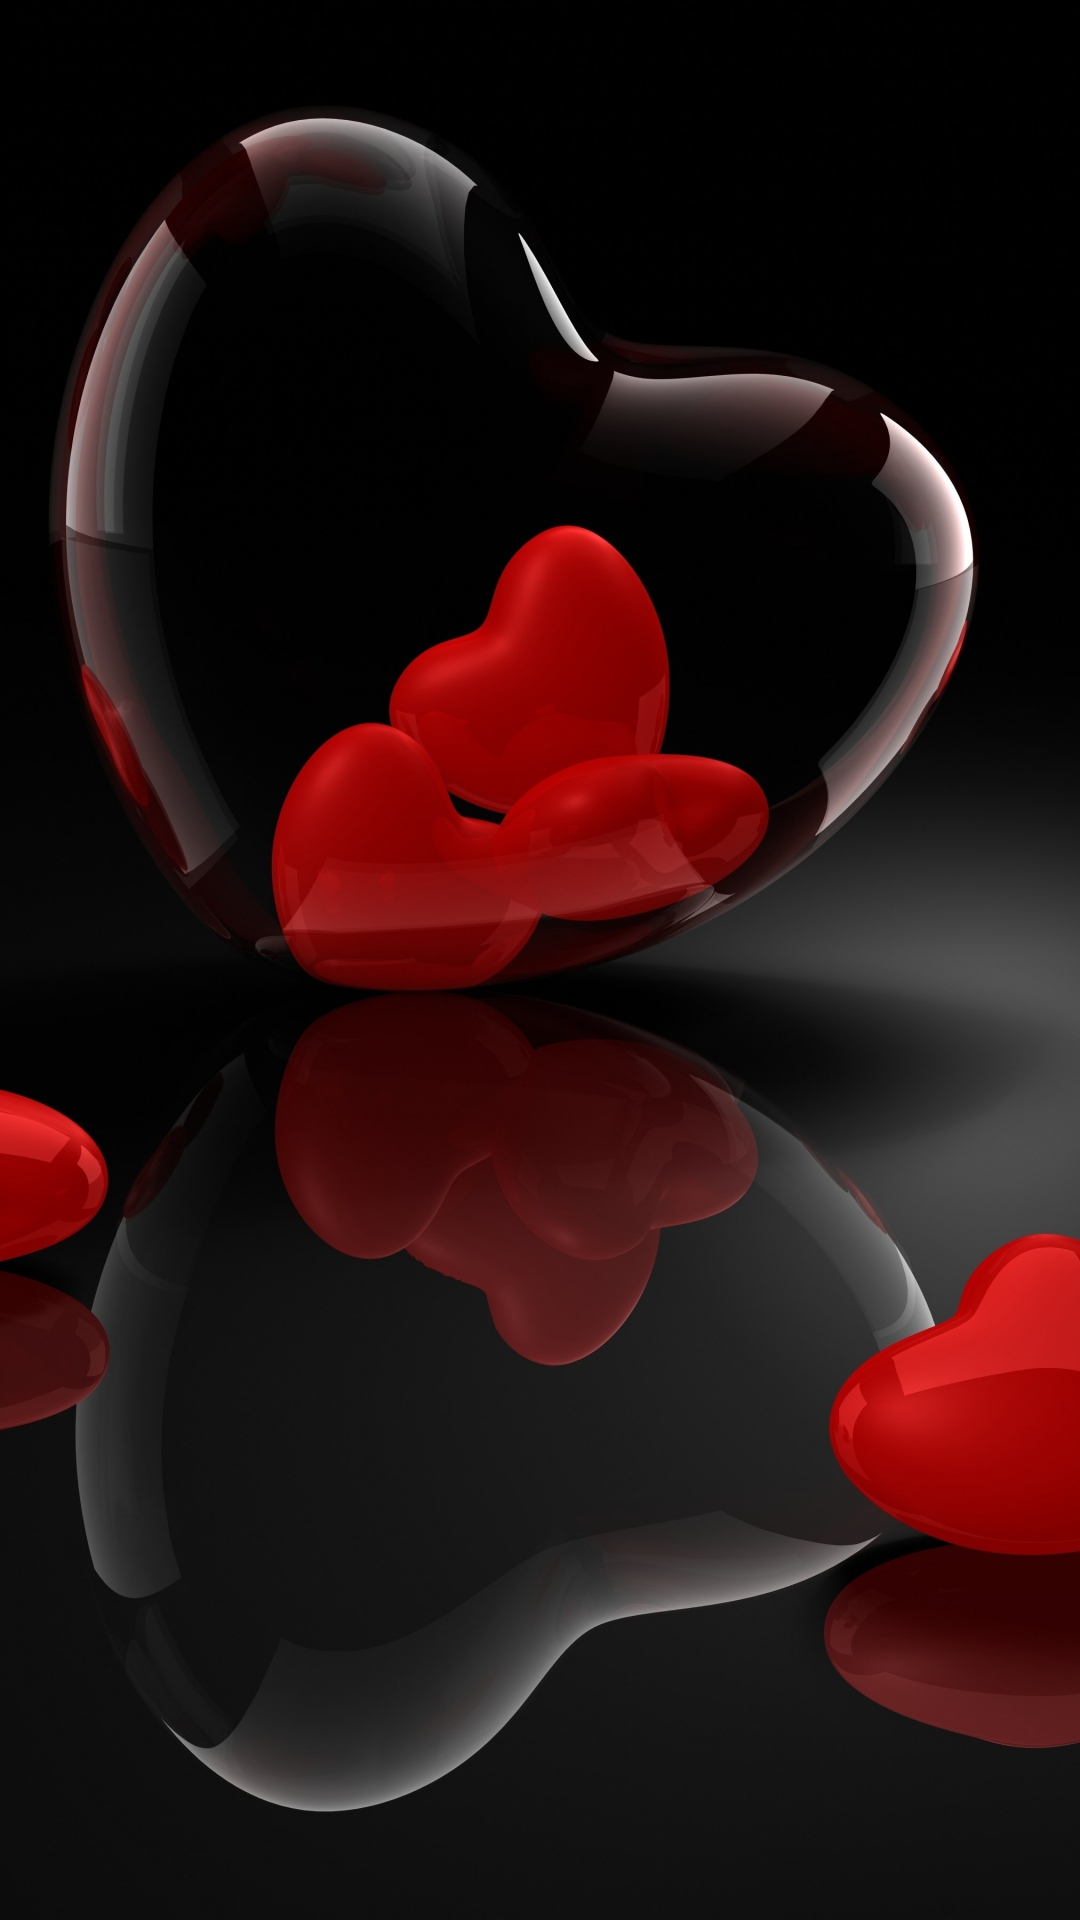 wallpaper.wiki-heart-glass-3d-reflection-iphone-6-wallpaper-pic